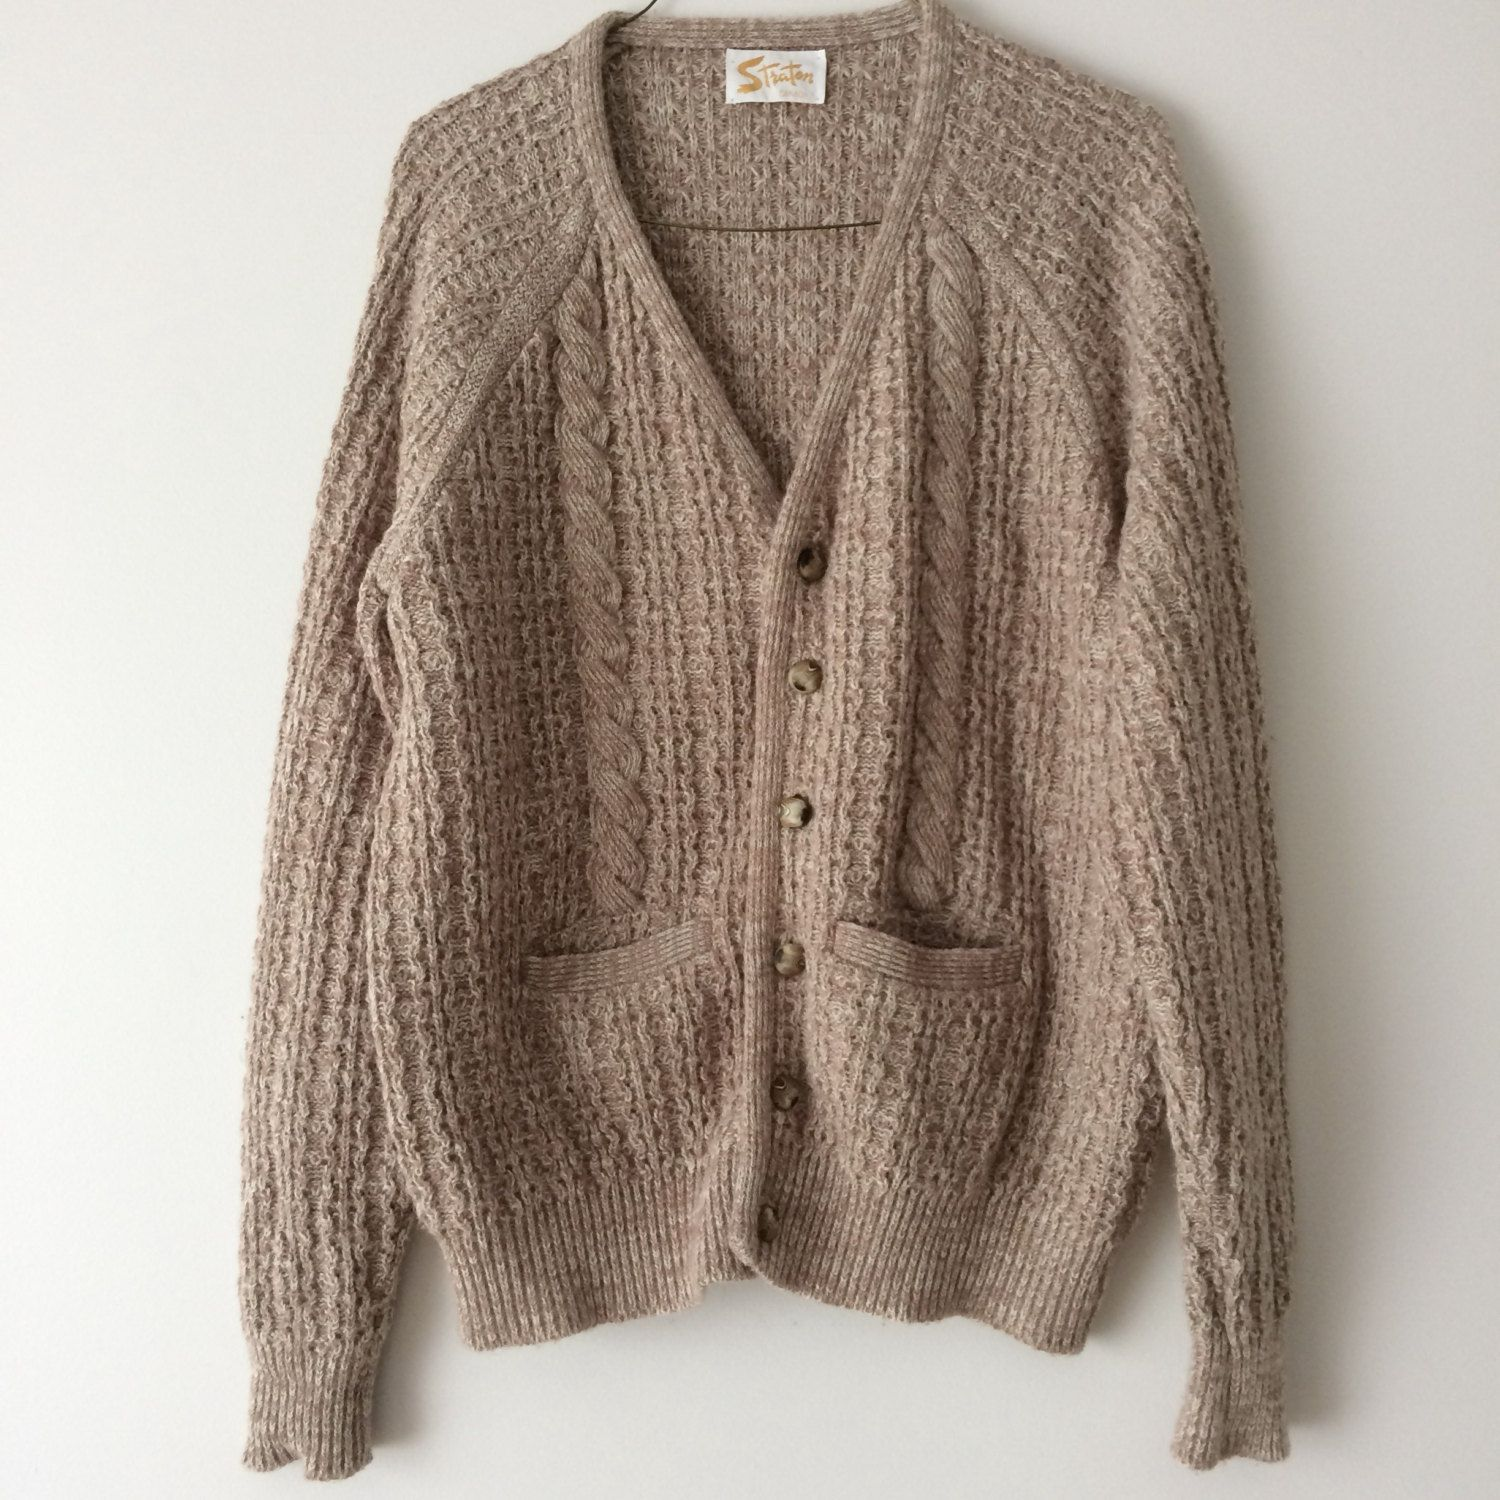 Vintage Oversized Knit Sweater Knitted Womens Mens Sweaters